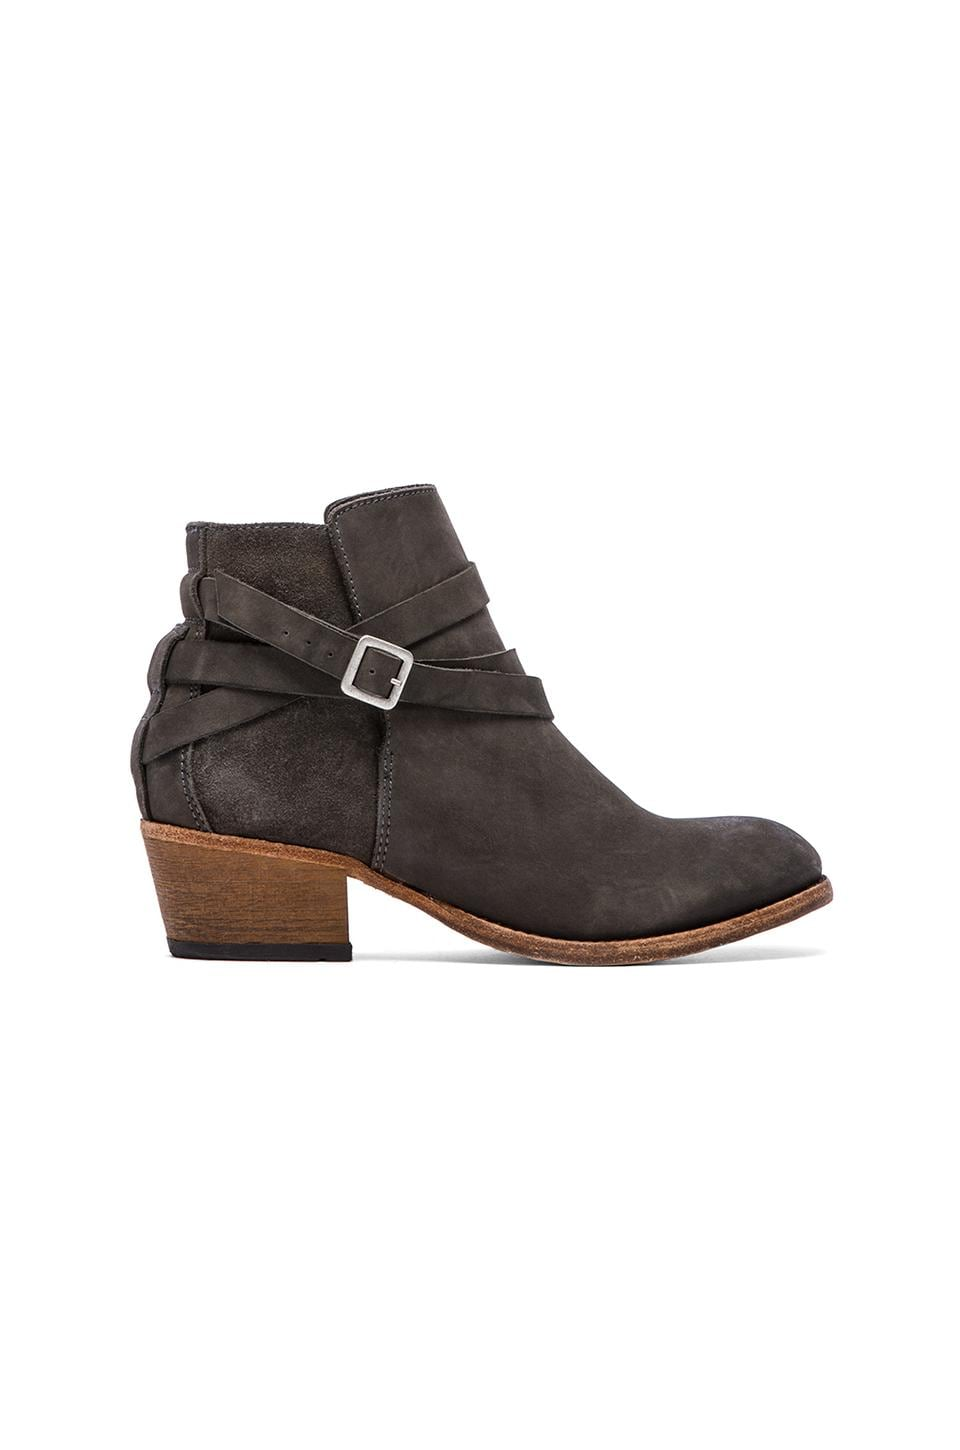 H by Hudson Horrigan Bootie in Smoke